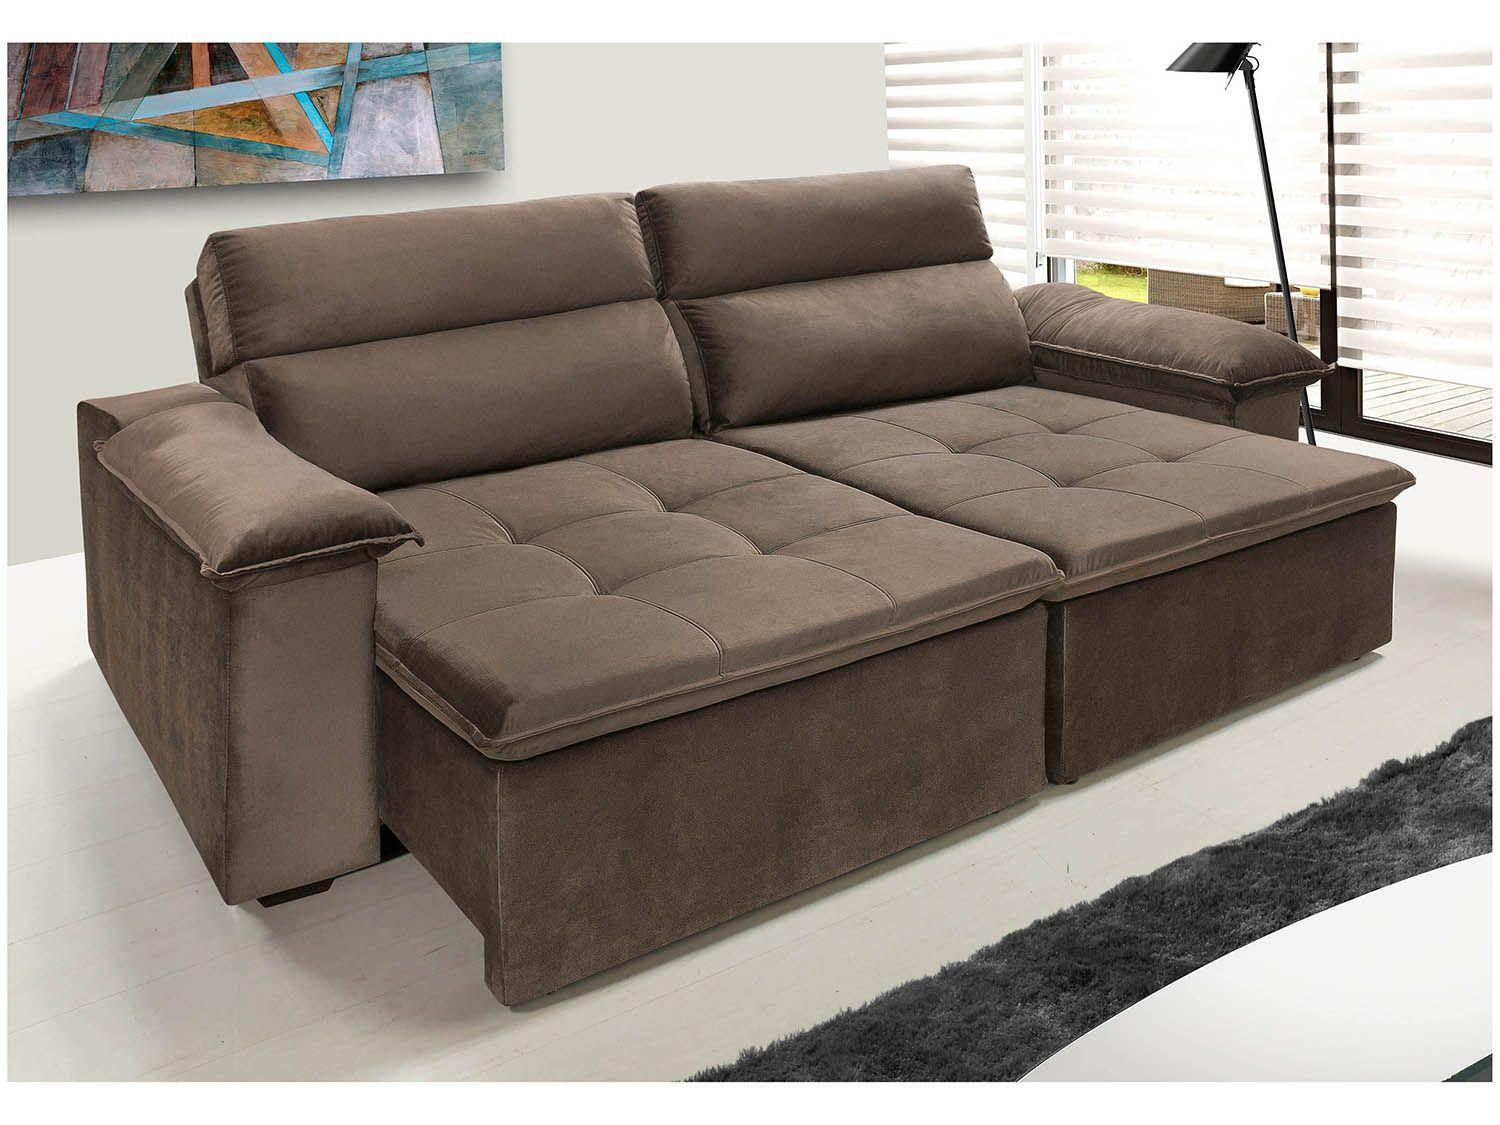 Sof retr til e reclin vel 3 lugares suede avalon hellen for Sofa 03 lugares retratil e reclinavel